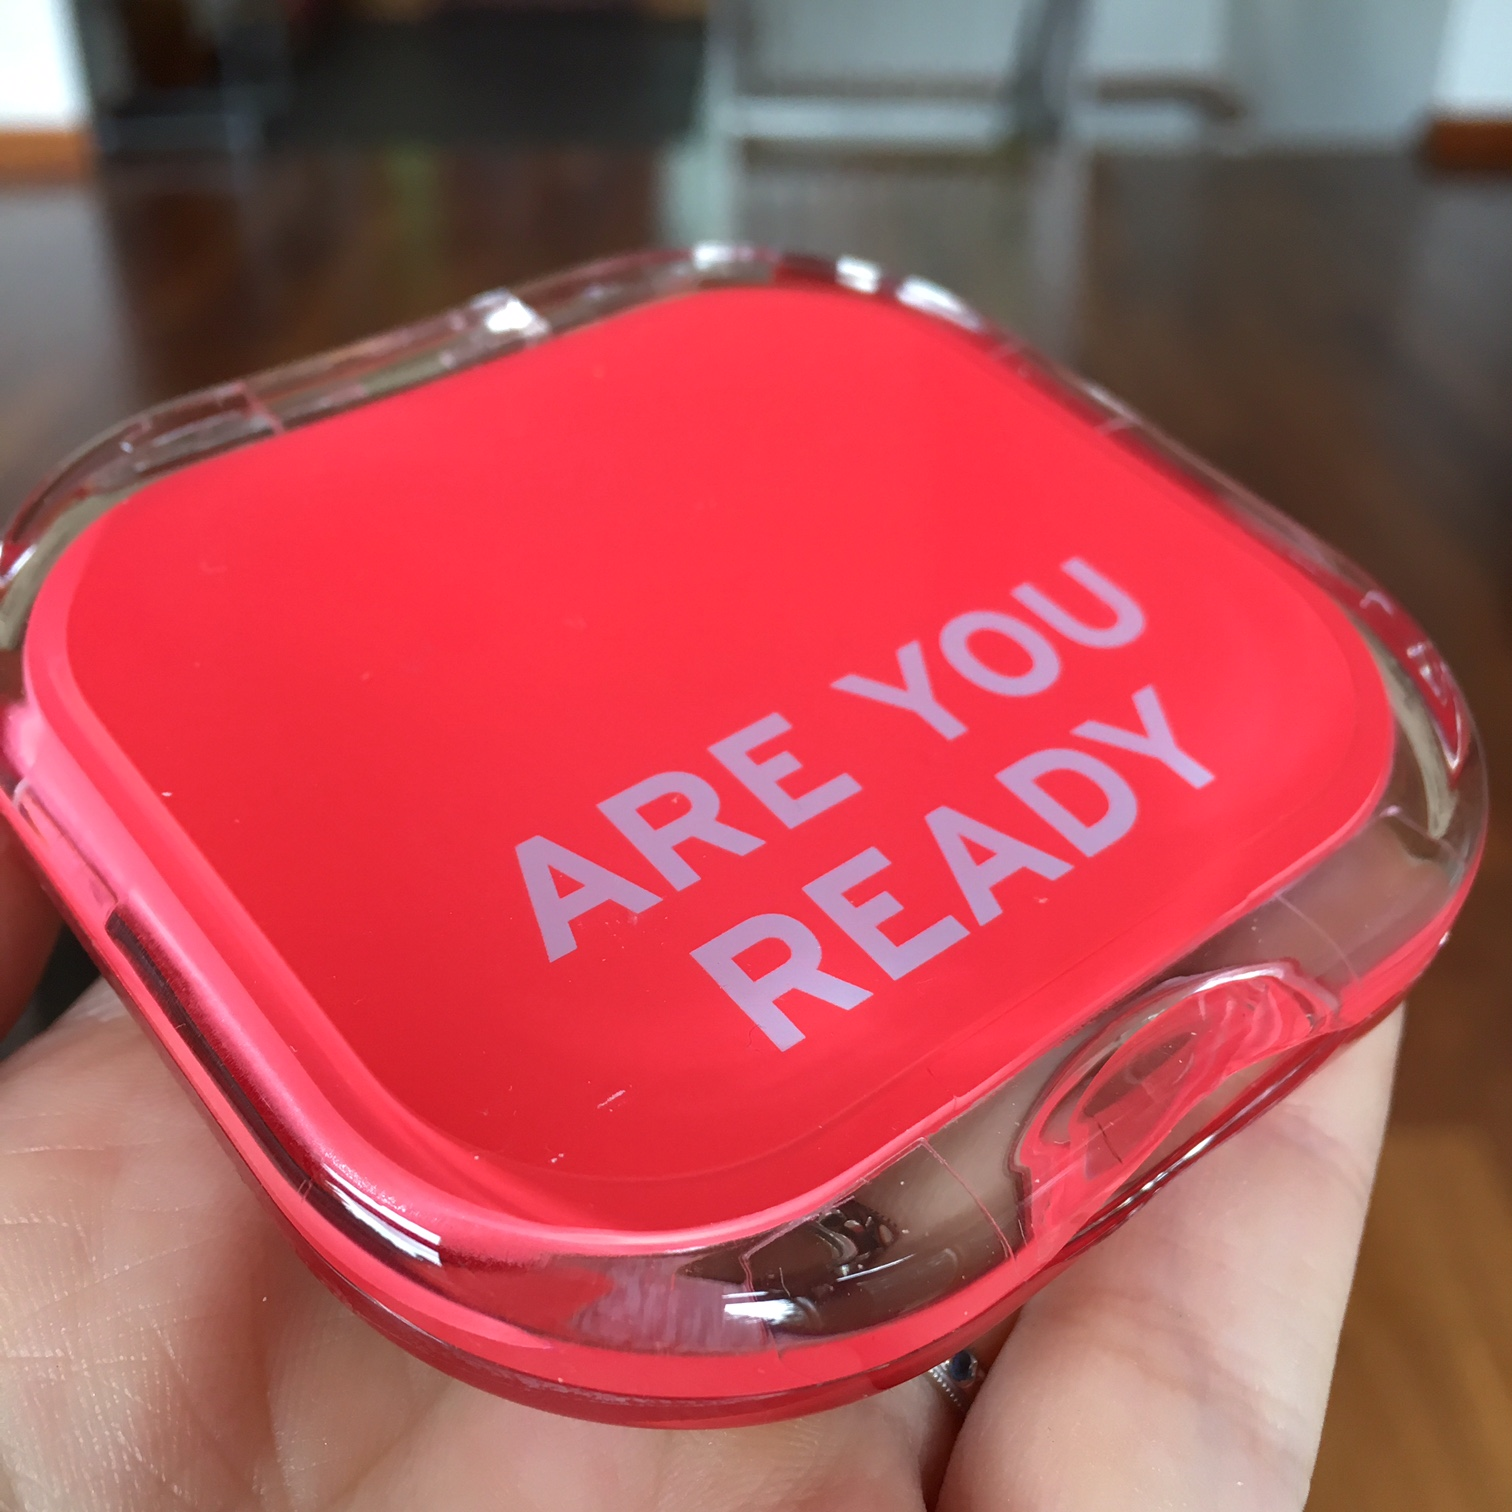 Knock Knock compact mirror